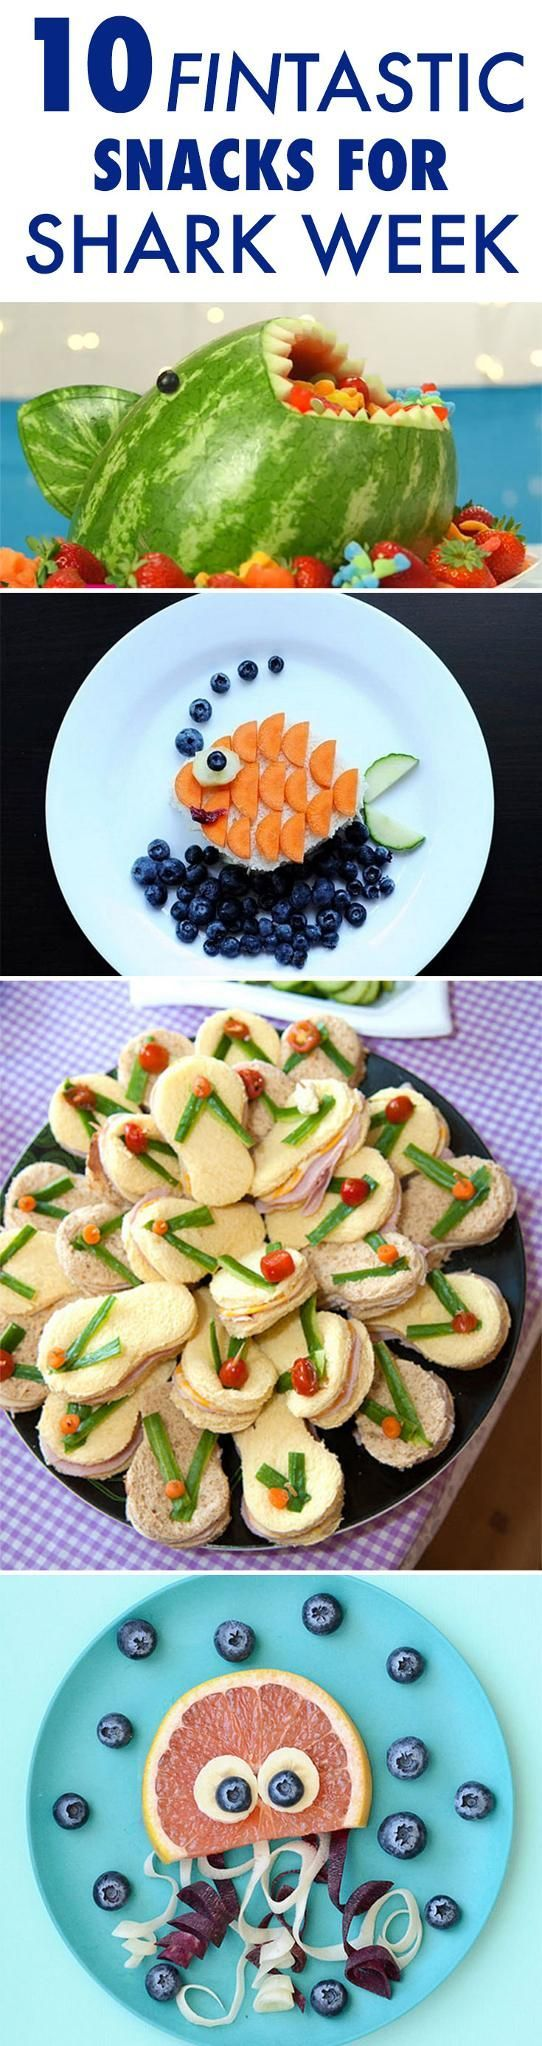 10 Fantastic Snacks to Celebrate Shark Week #sharkweekfood Celebrate Shark Week in style with these adorable, healthy snacks! // food // kid friendly // summer food ideas // party ideas // snacks // healthy recipes // Beachbody // BeachbodyBlog.com #sharkweekfood